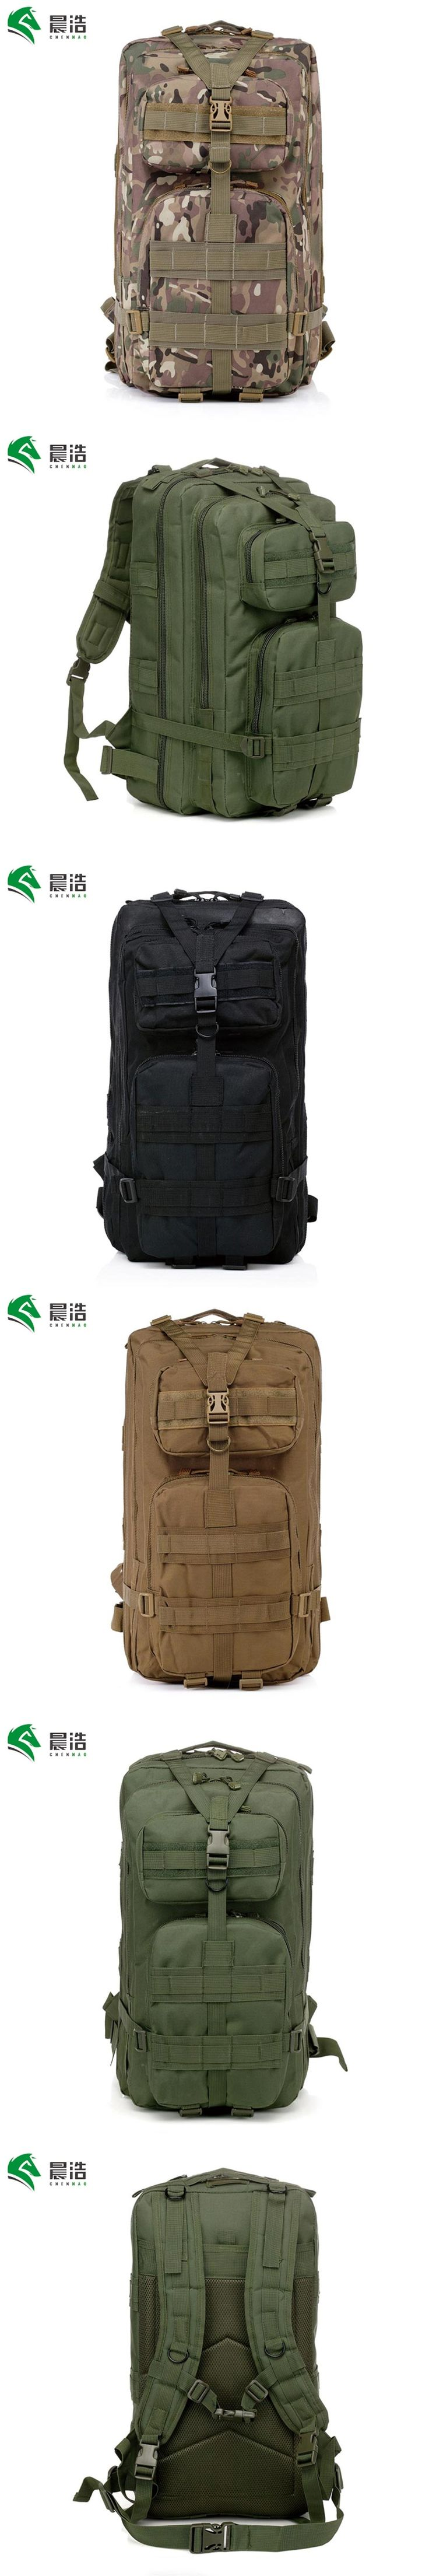 CHENHAO Large Military Tactical Backpack Waterproof Green Mountaineer Hiking Camping Hunting Backpack Outdoor Rucksack Crafted